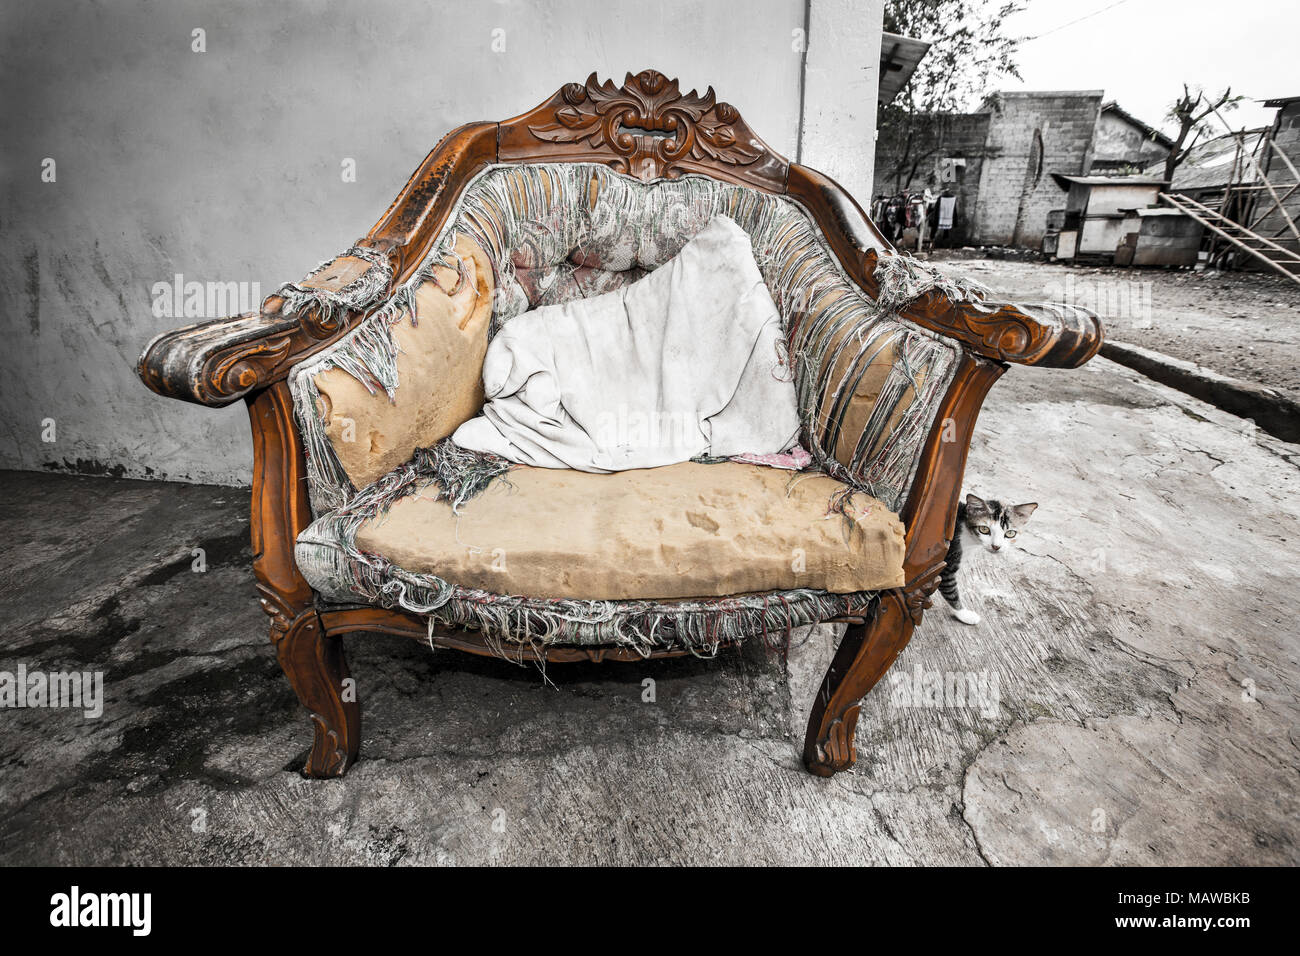 Tatty old chair in Indonesian kampung (Village) - Stock Image